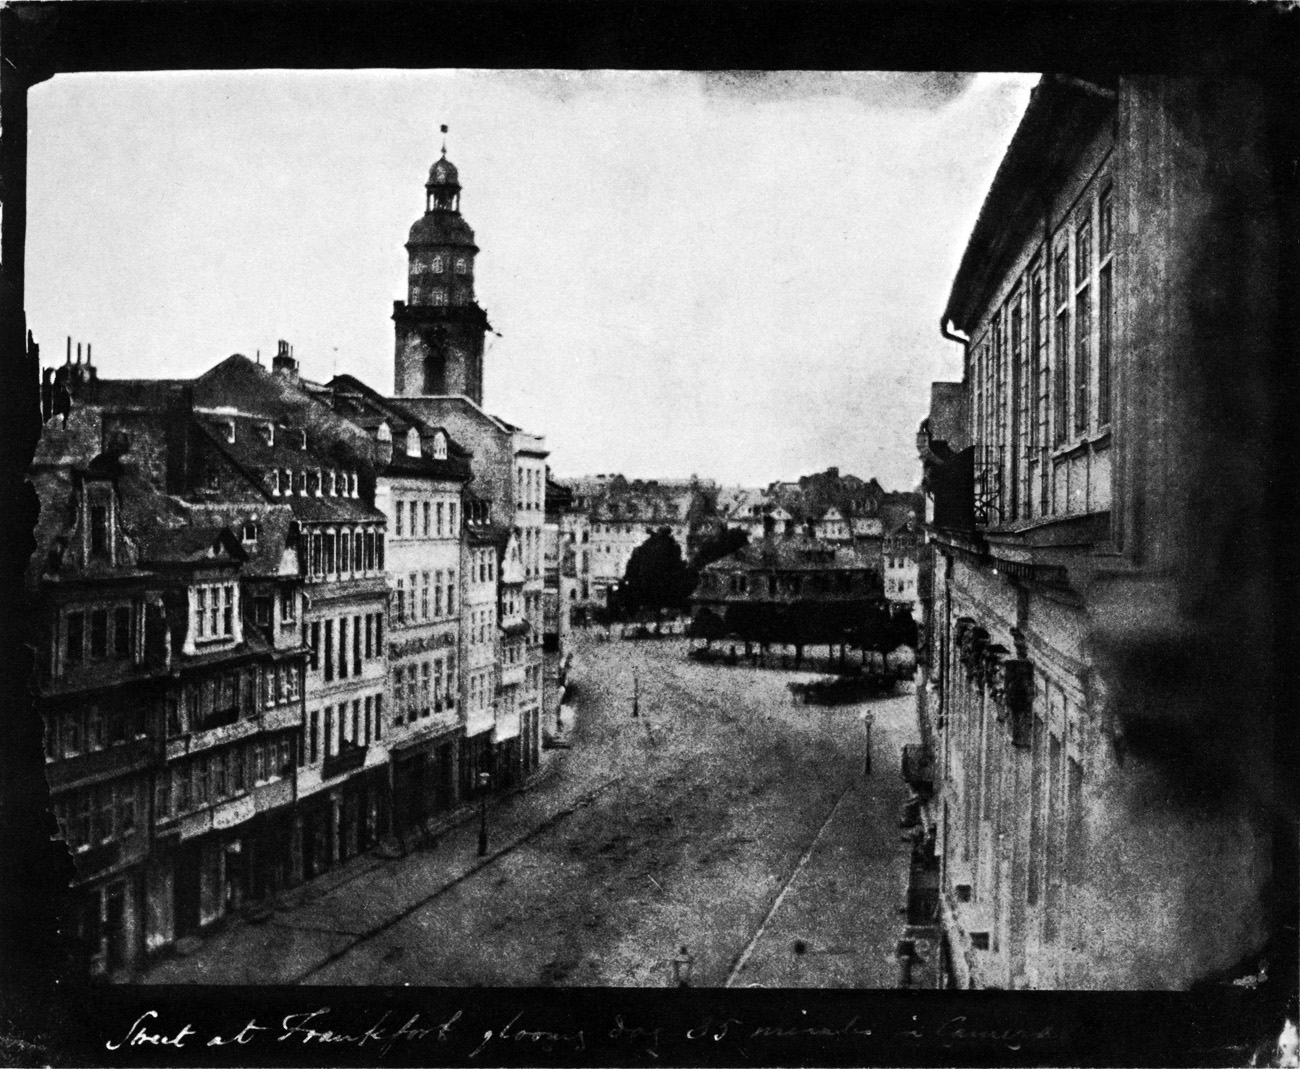 Frankfurt_Am_Main-William_Henry_Fox_Talbot-Zeil_in_Richtung_Hauptwache-1846